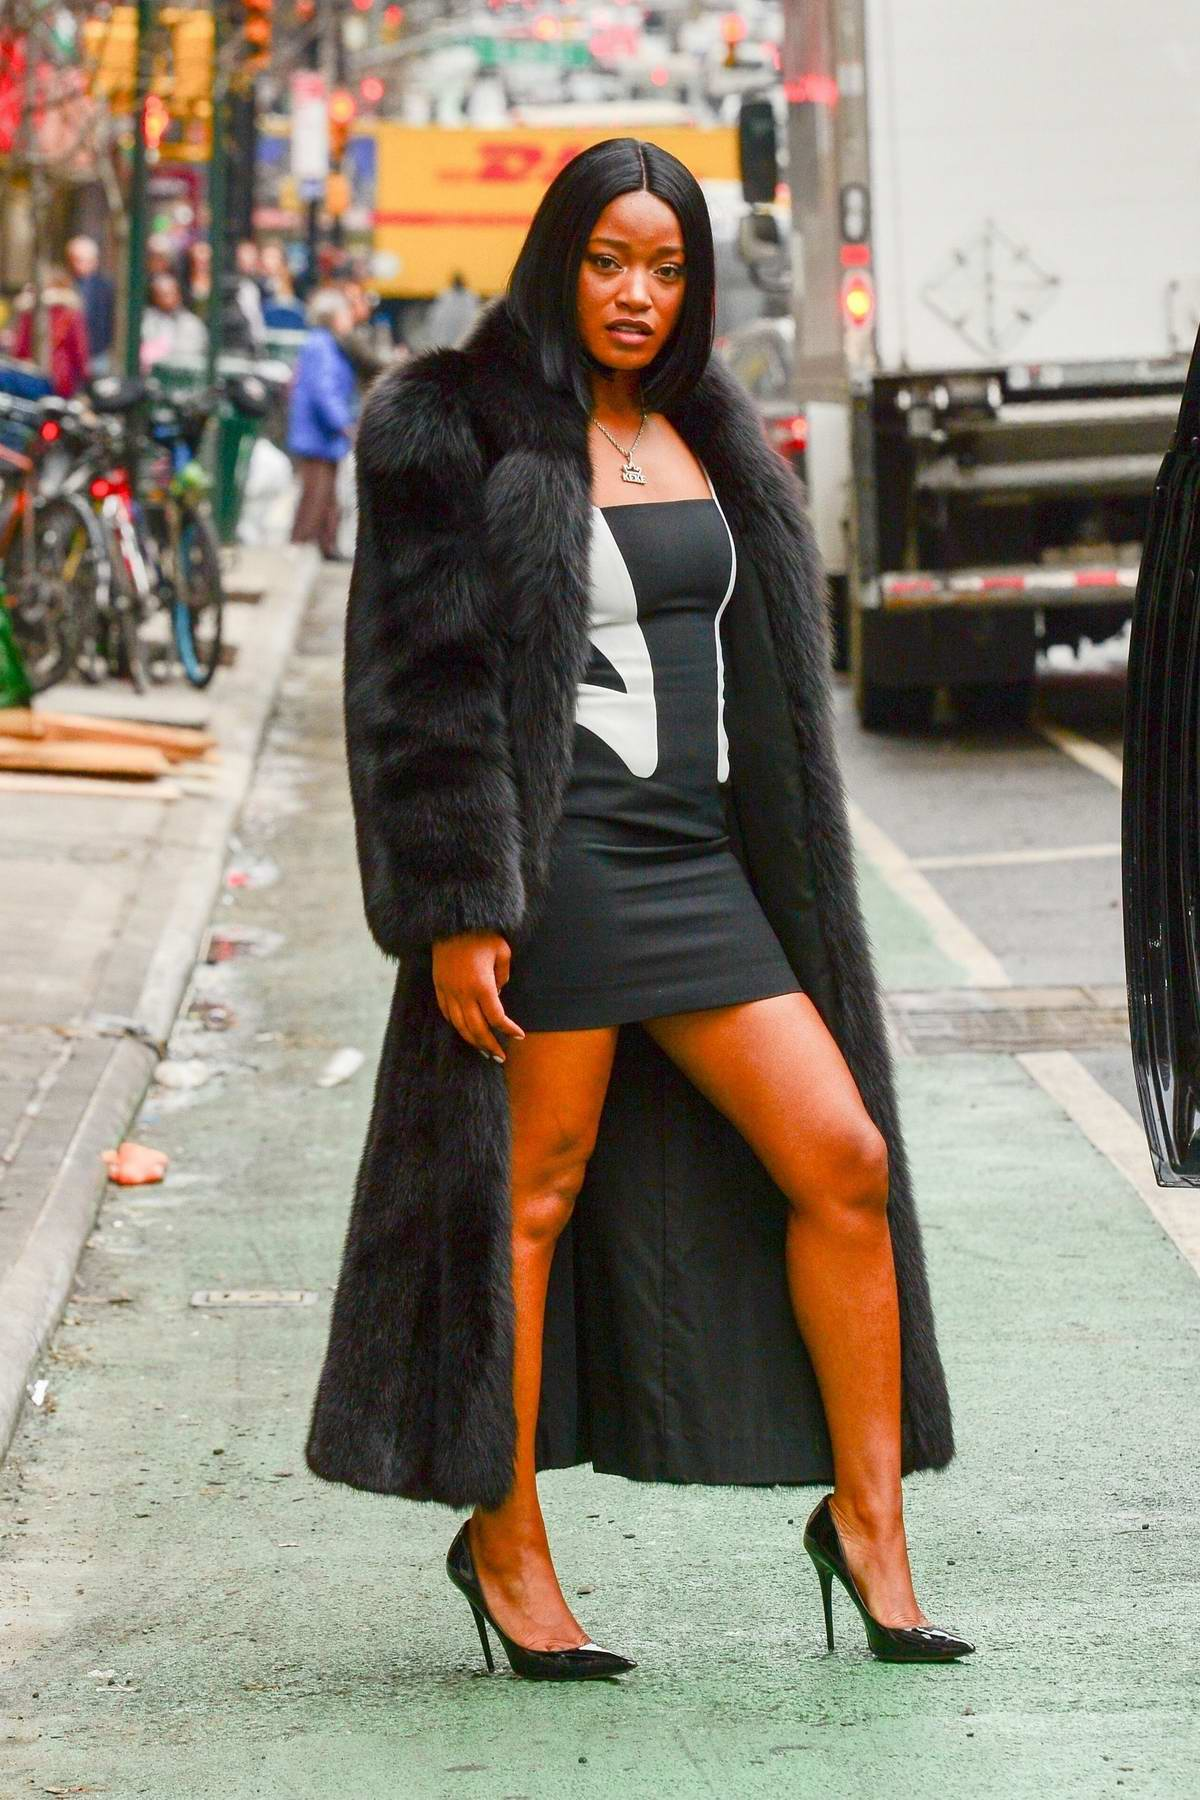 Keke Palmer wore a black and white short dress with a fur coat as she leaves ABC's TV show 'The View' in New York City